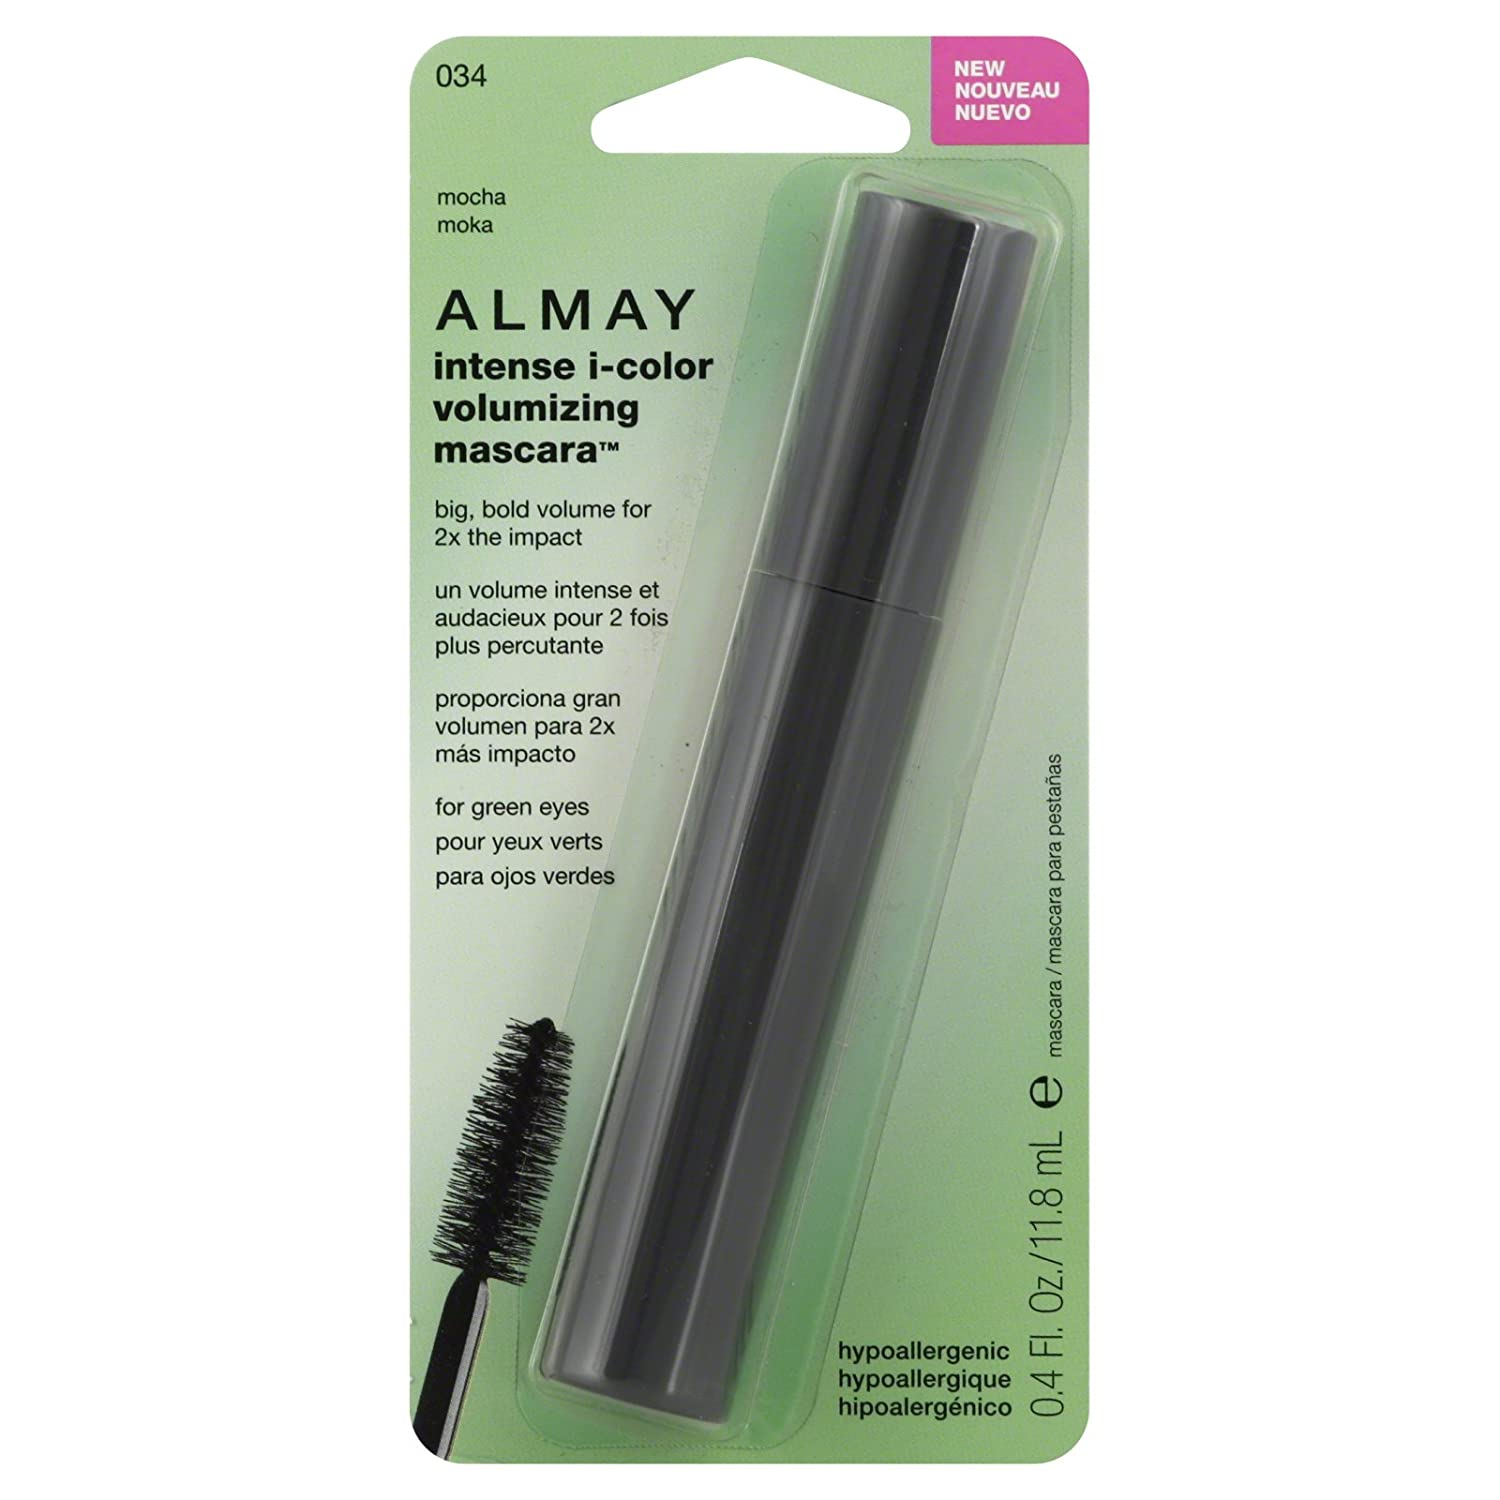 Amazon.com : Almay Intense I-Color Volumizing Mascara For Green Eyes, Mocha [034] 0.4 oz (... : Beauty